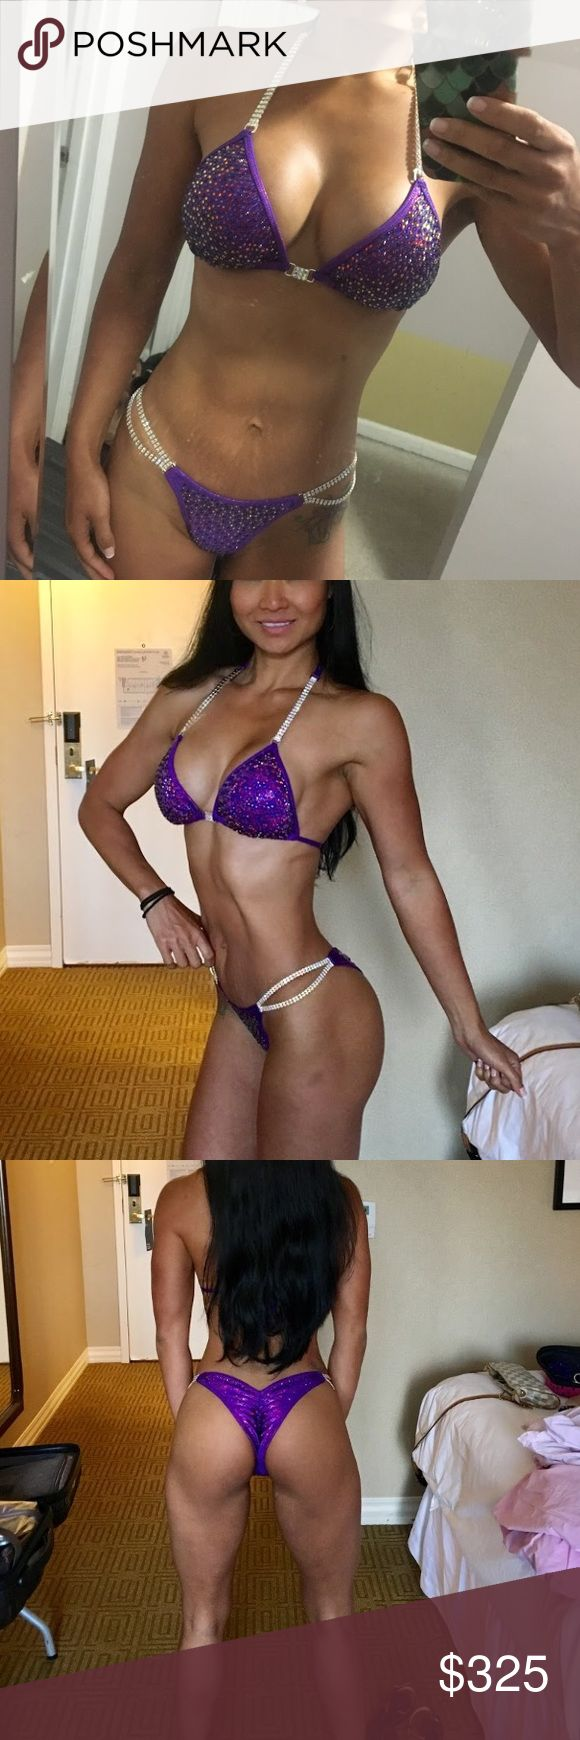 New purple competition bikini  New competition bikini. Only tried in never worn on stage. Top fits up to C cup and bottoms size small pro cut. Brand is Katkinis. Fully blinged out Swim Bikinis